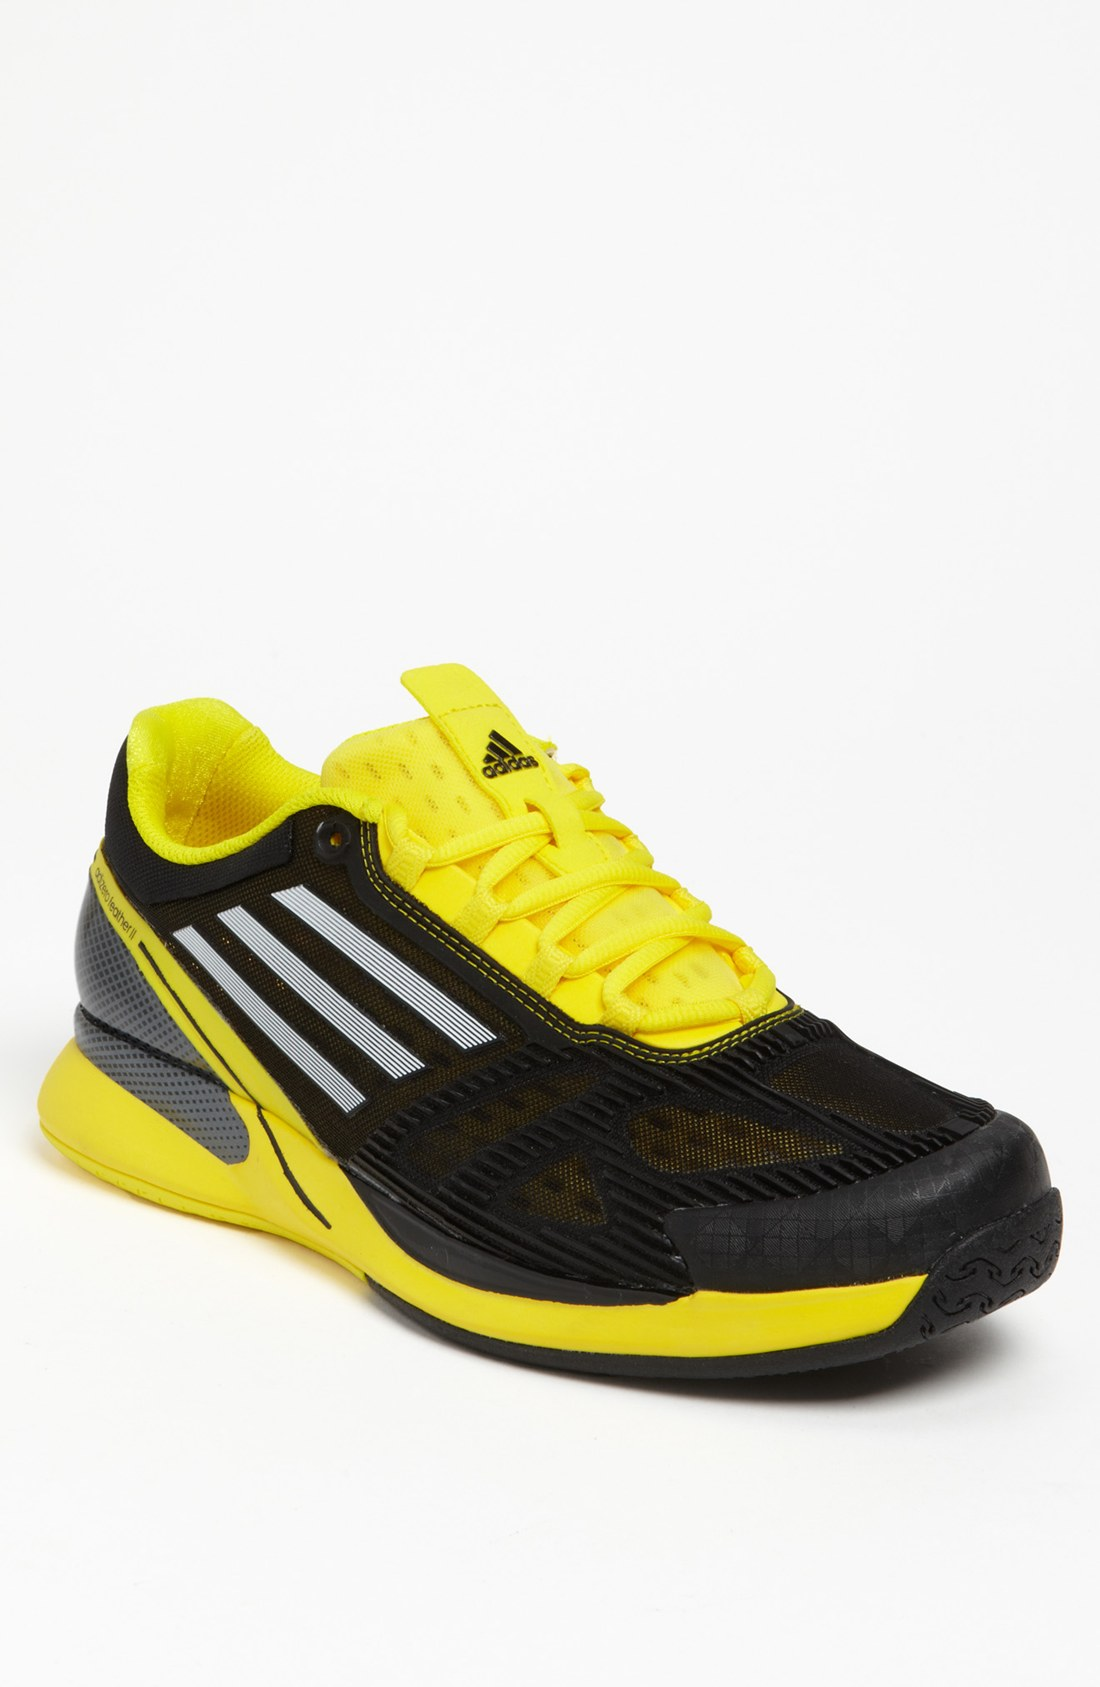 Adidas Feather Ii Tennis Shoes